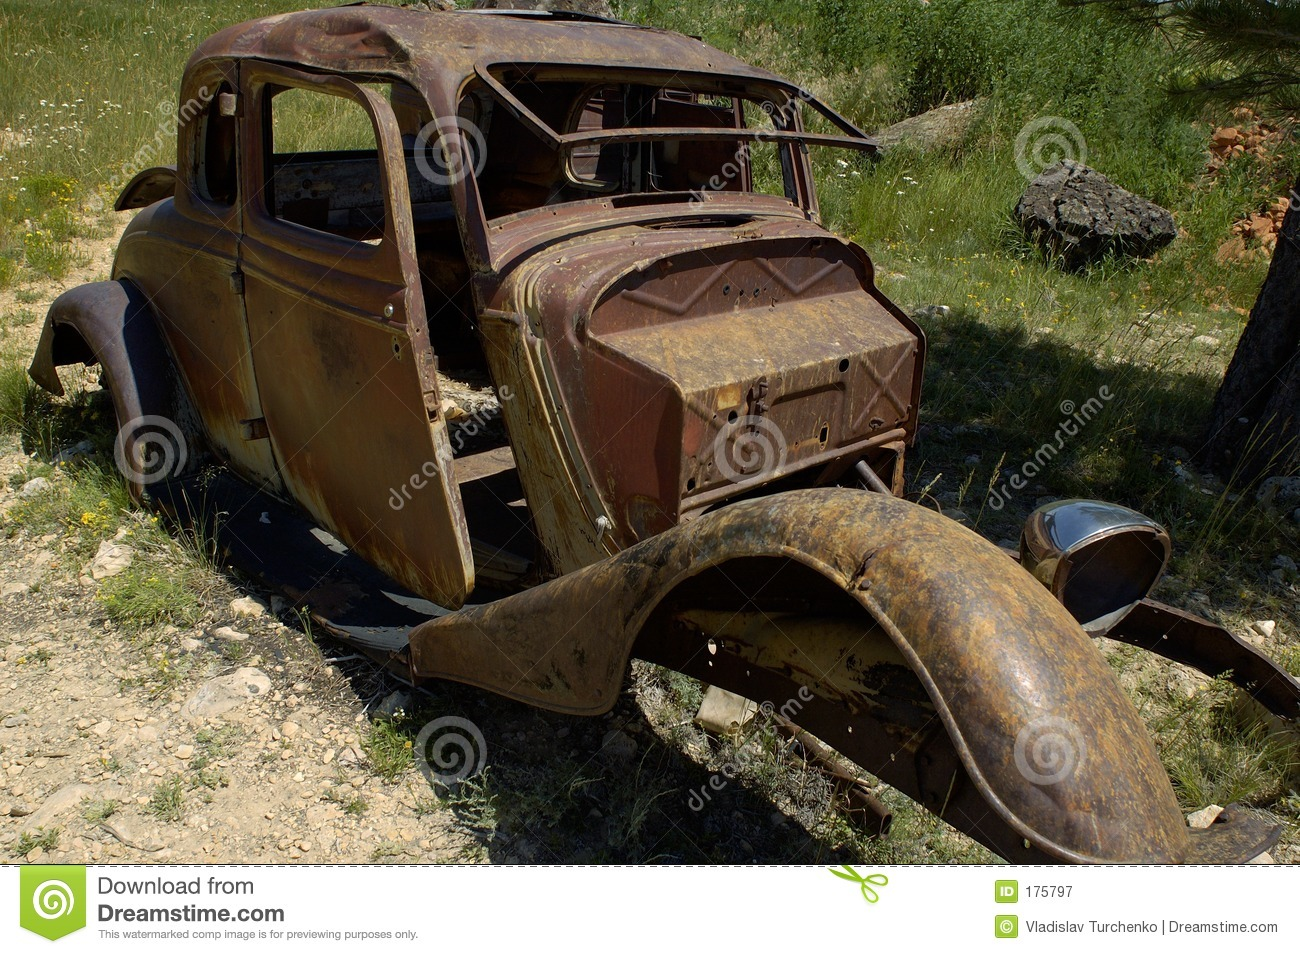 Rusty old car stock image. Image of life, generation, dead - 175797